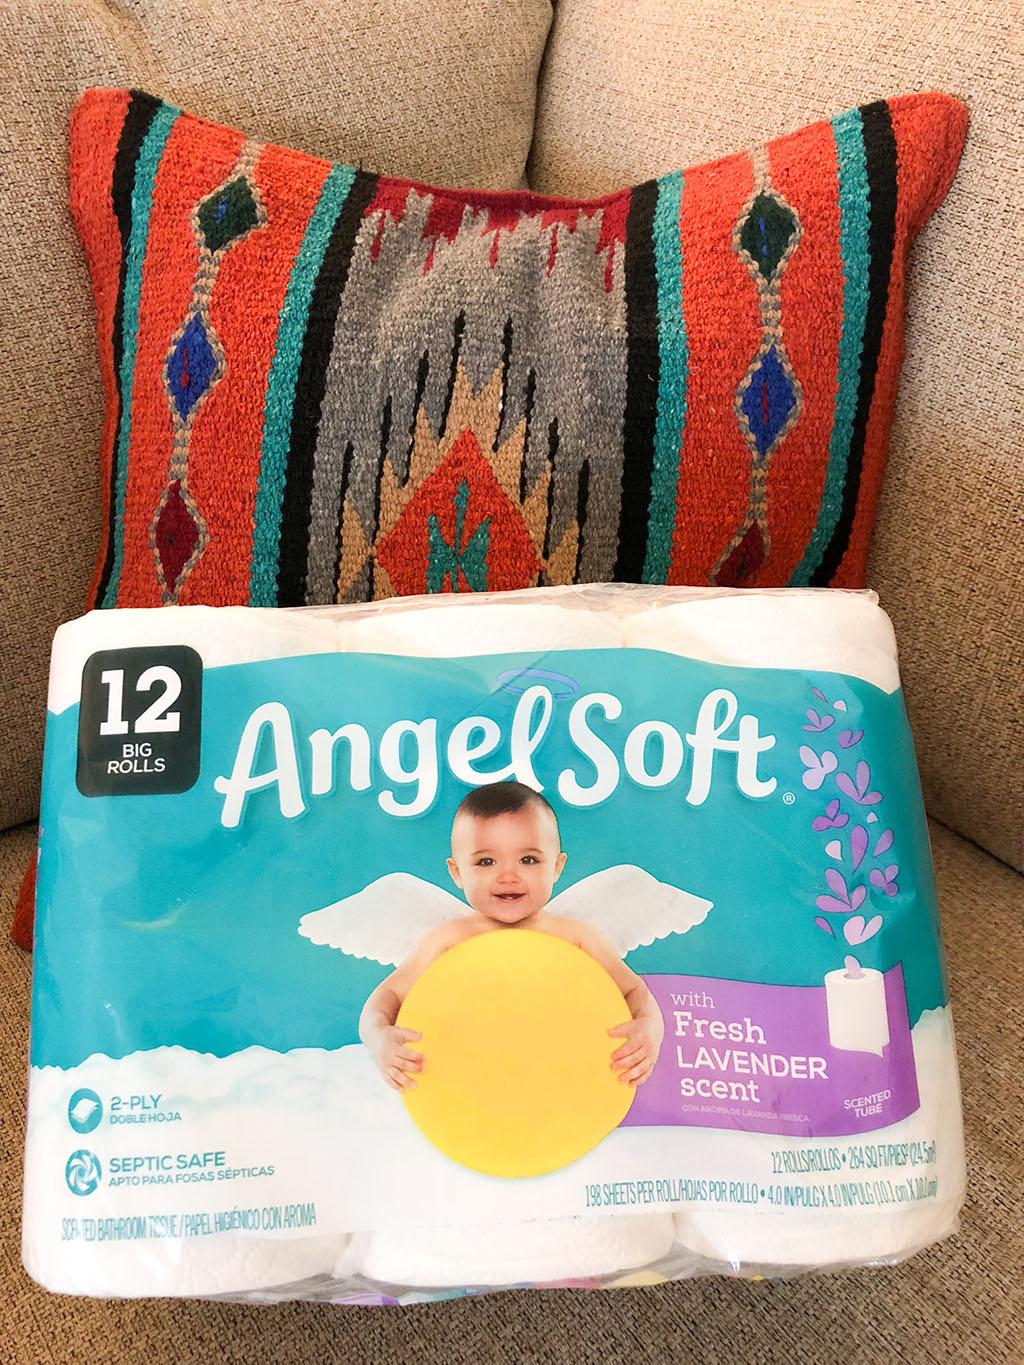 package of angel soft toilet paper on a couch